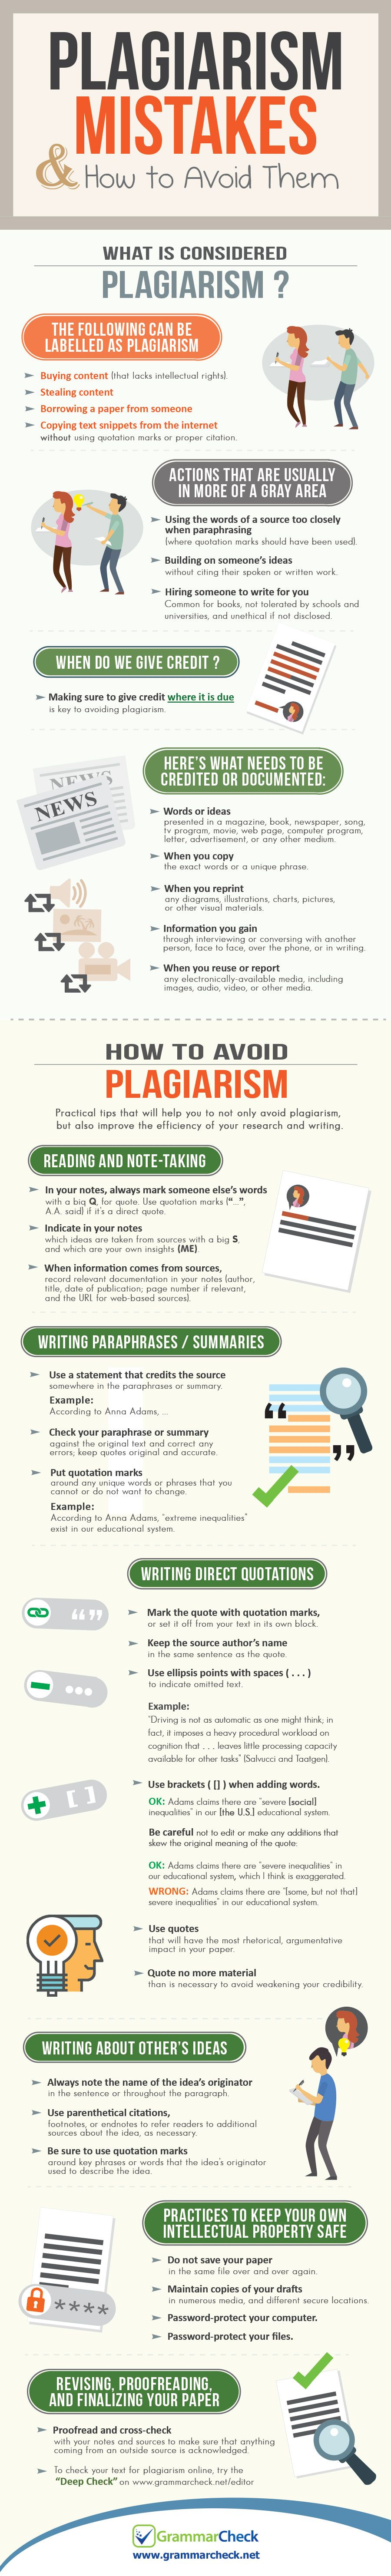 Plagiarism Mistake How To Avoid Them Infographic Educational Academic Writing Proper Paraphrasing